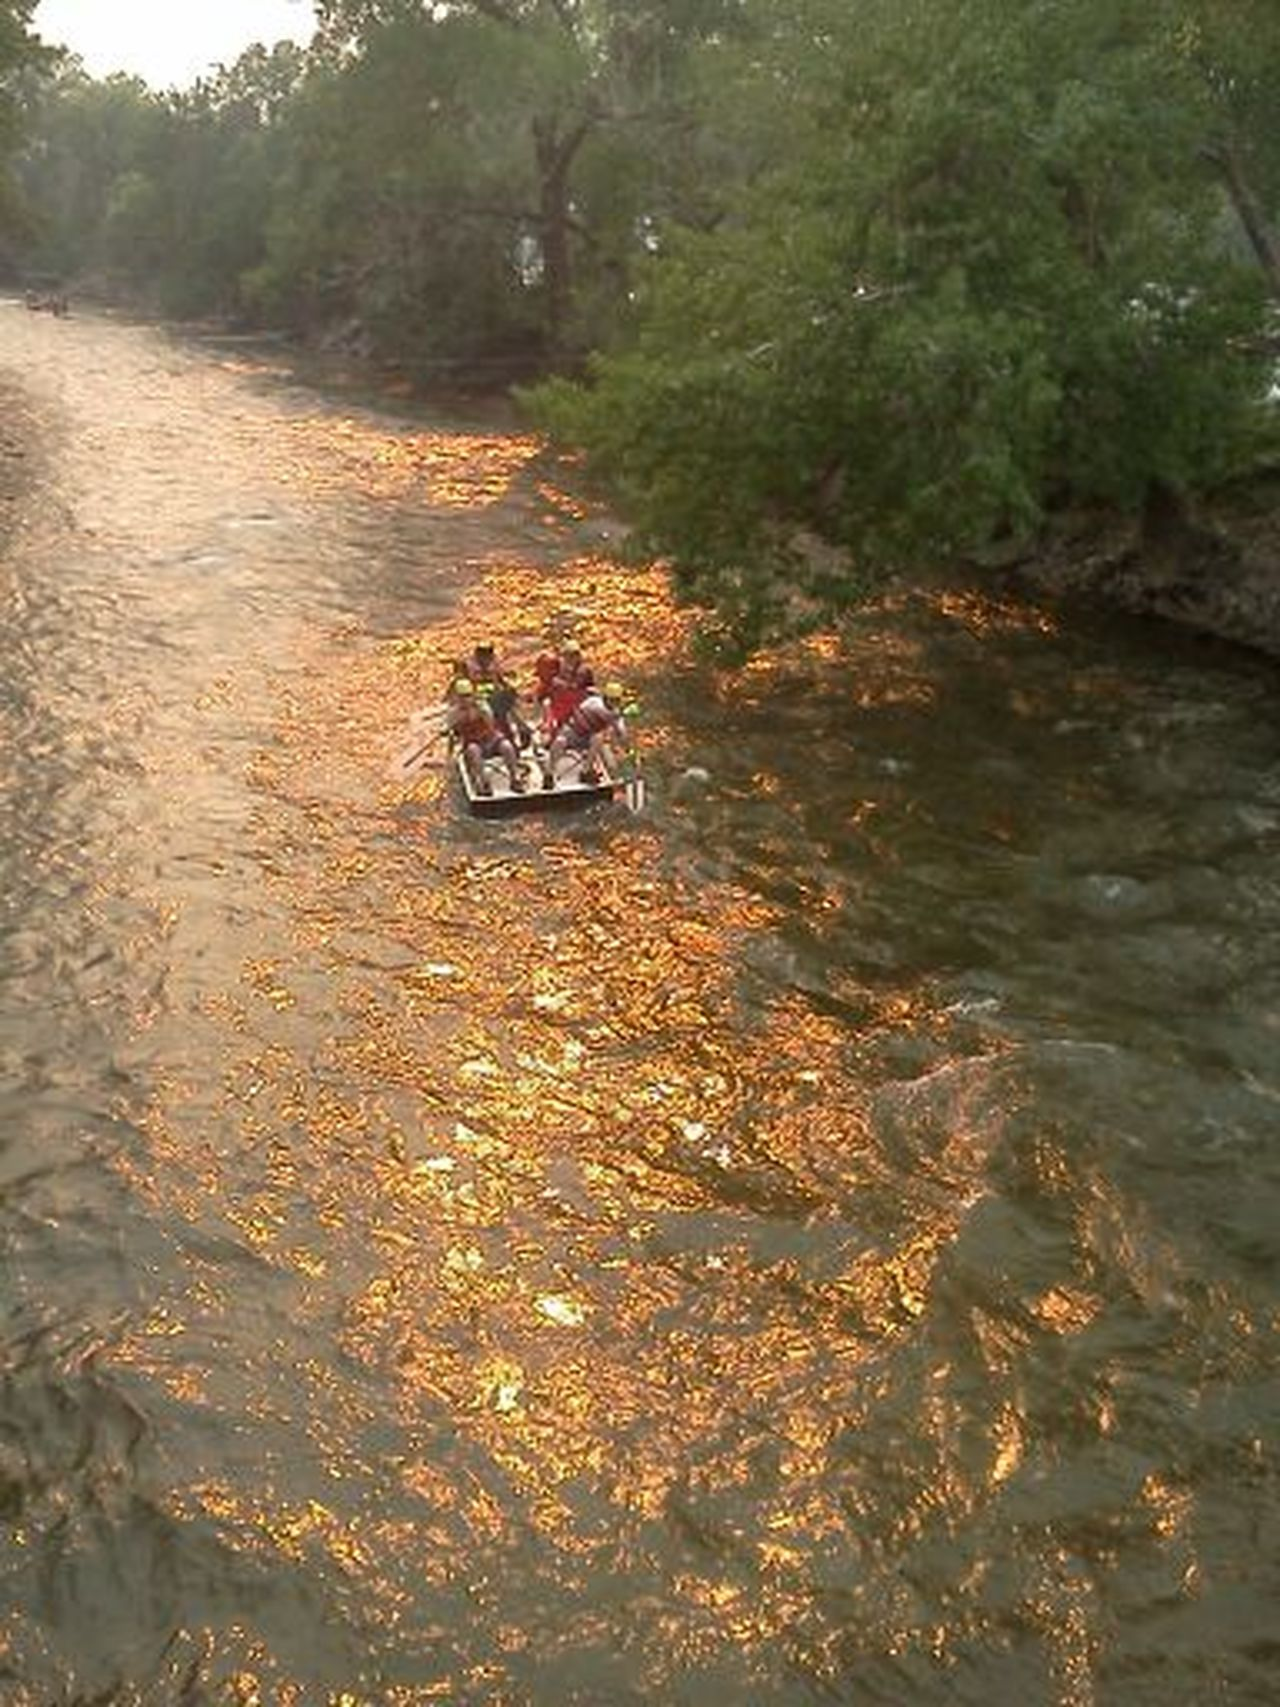 43 Golden Moments Build Your Own Boat Race Arkansas River Colorado Water Trees Beautiful Day Boat Race  Good Times